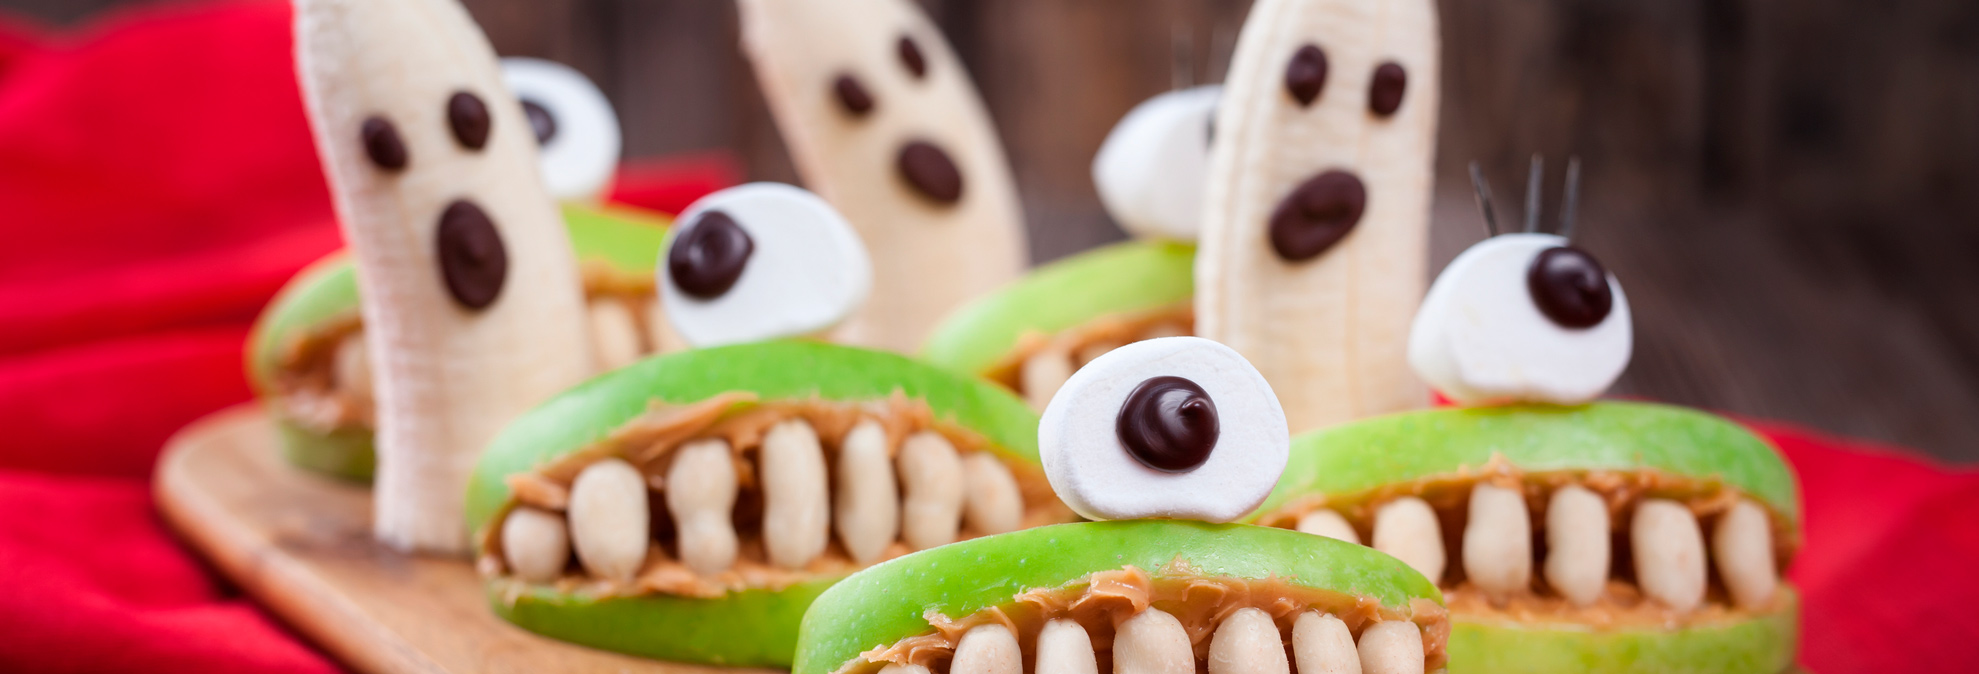 5 tricks for healthy halloween treats consumer reports